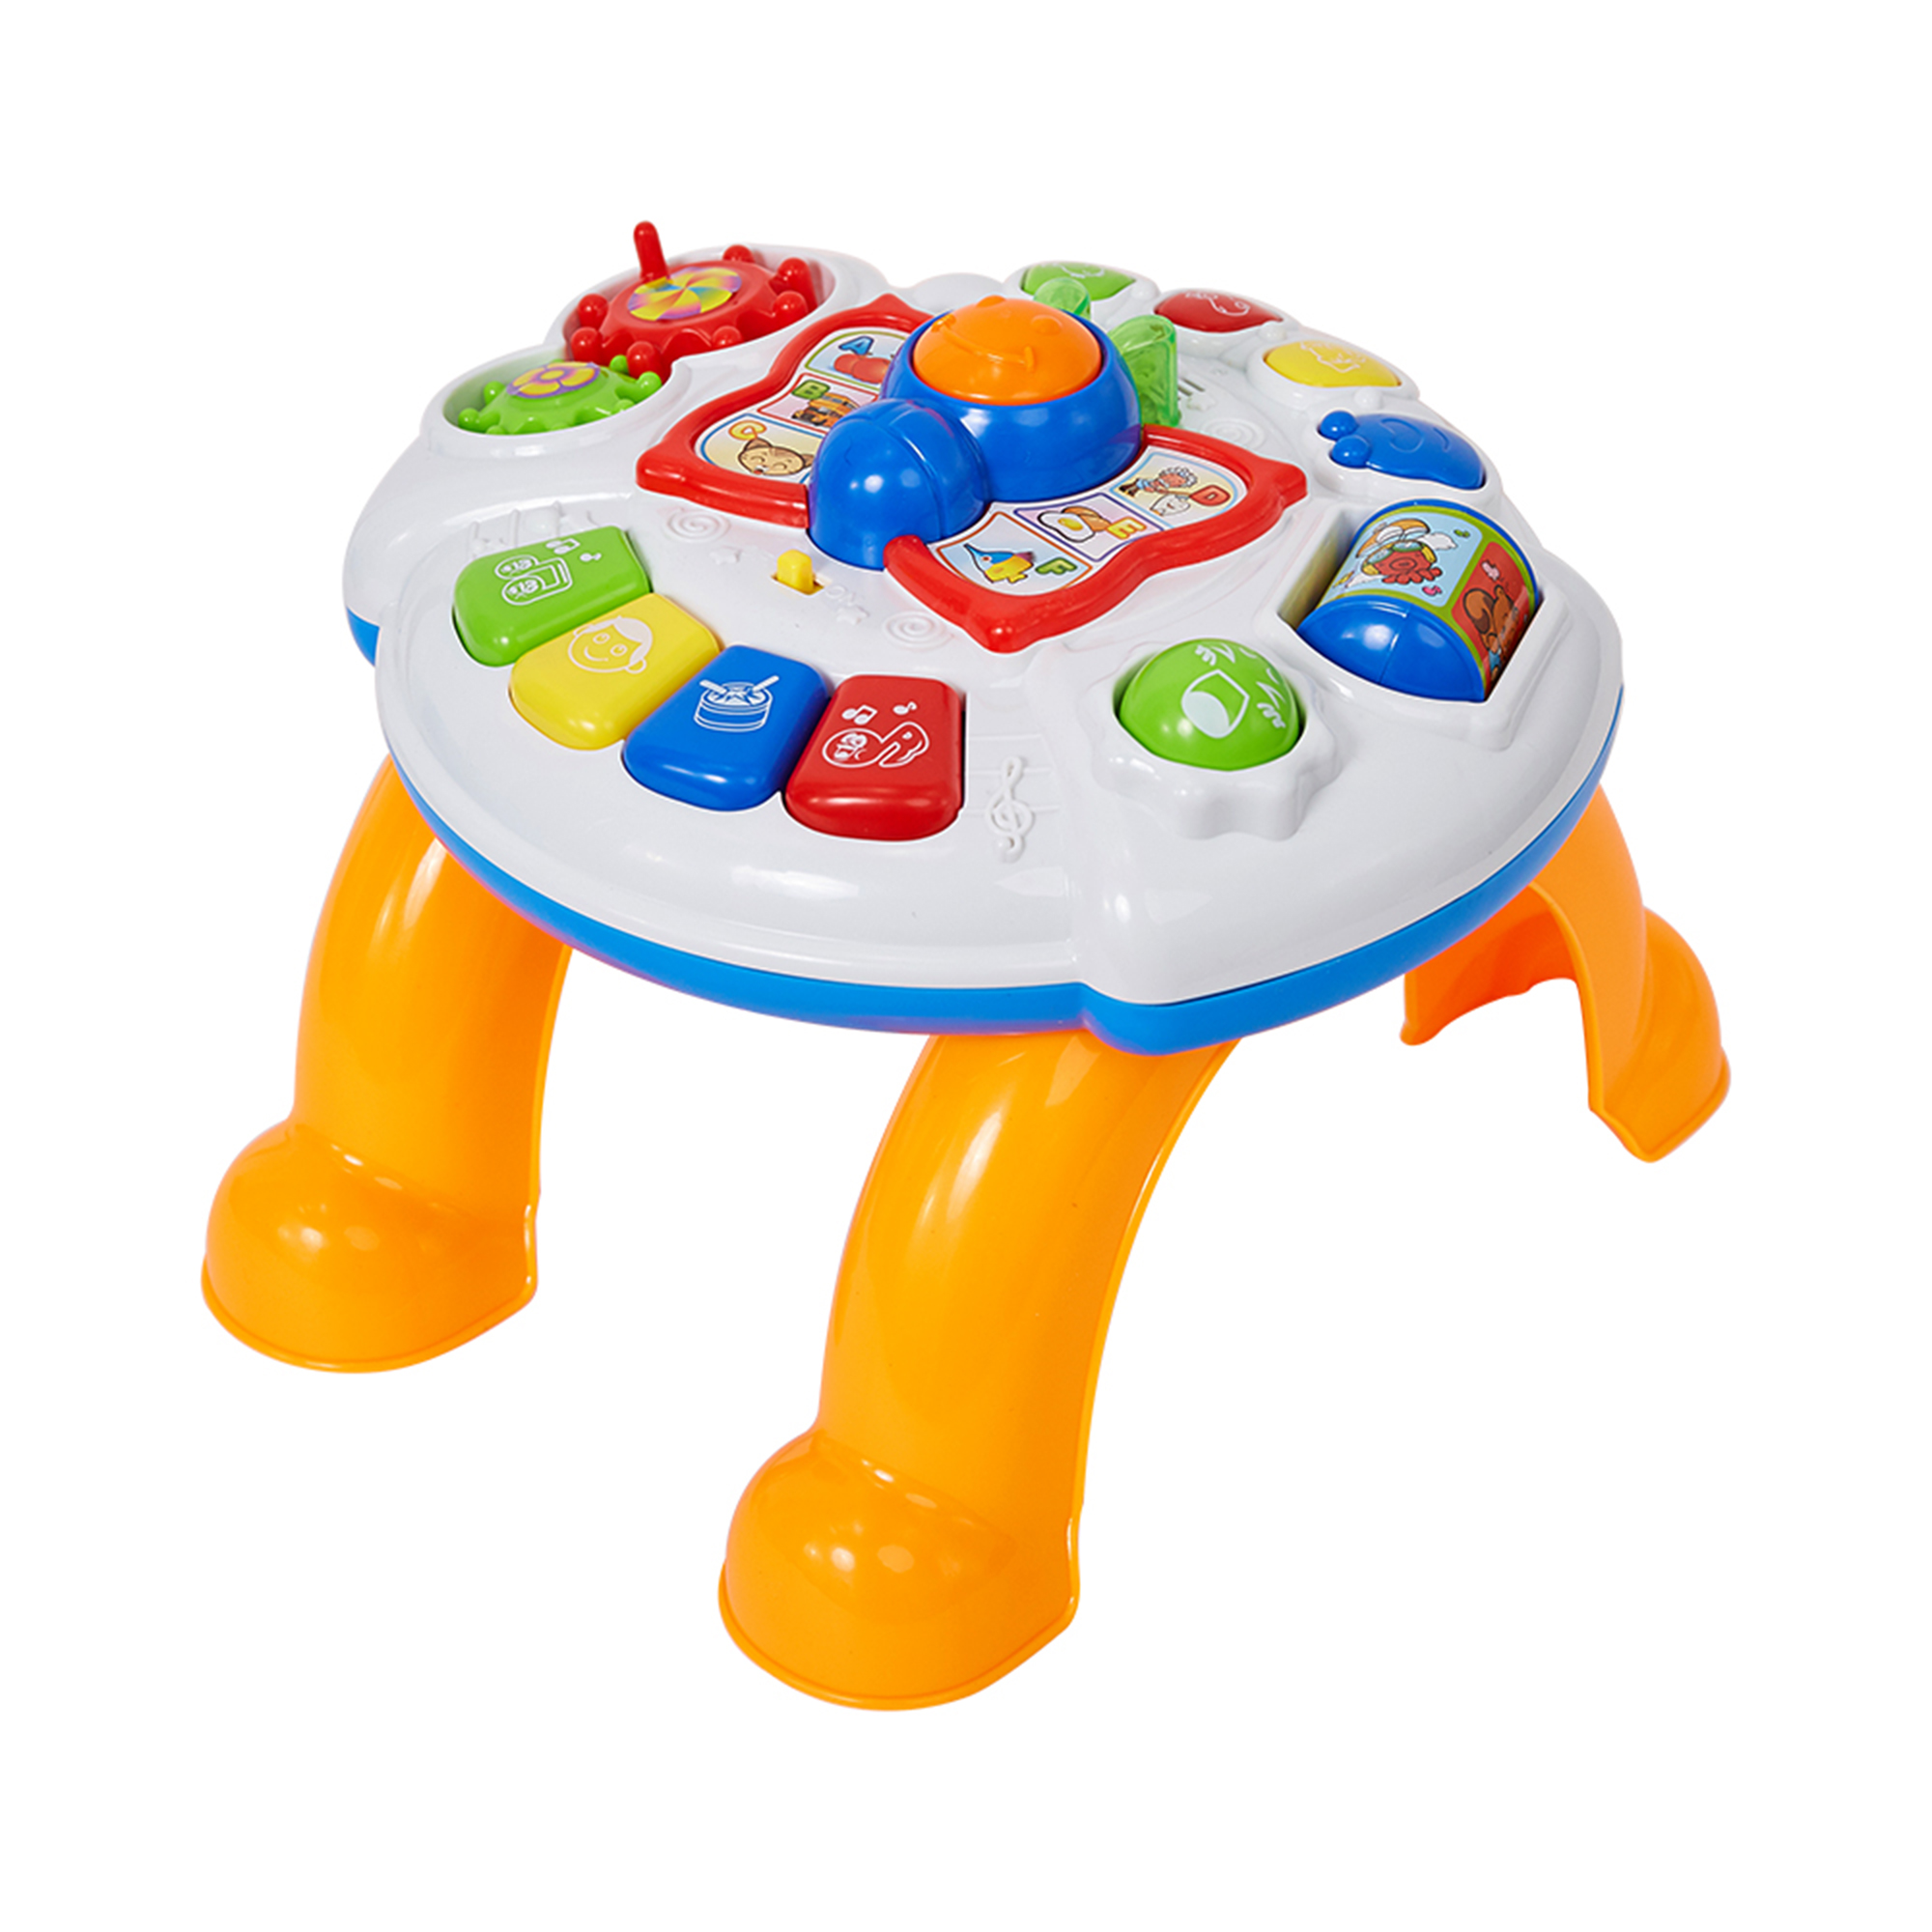 KARMAS PRODUCT Kids Play and Learning Table Activity Desk Musical Baby Toy by KARMAS PRODUCT